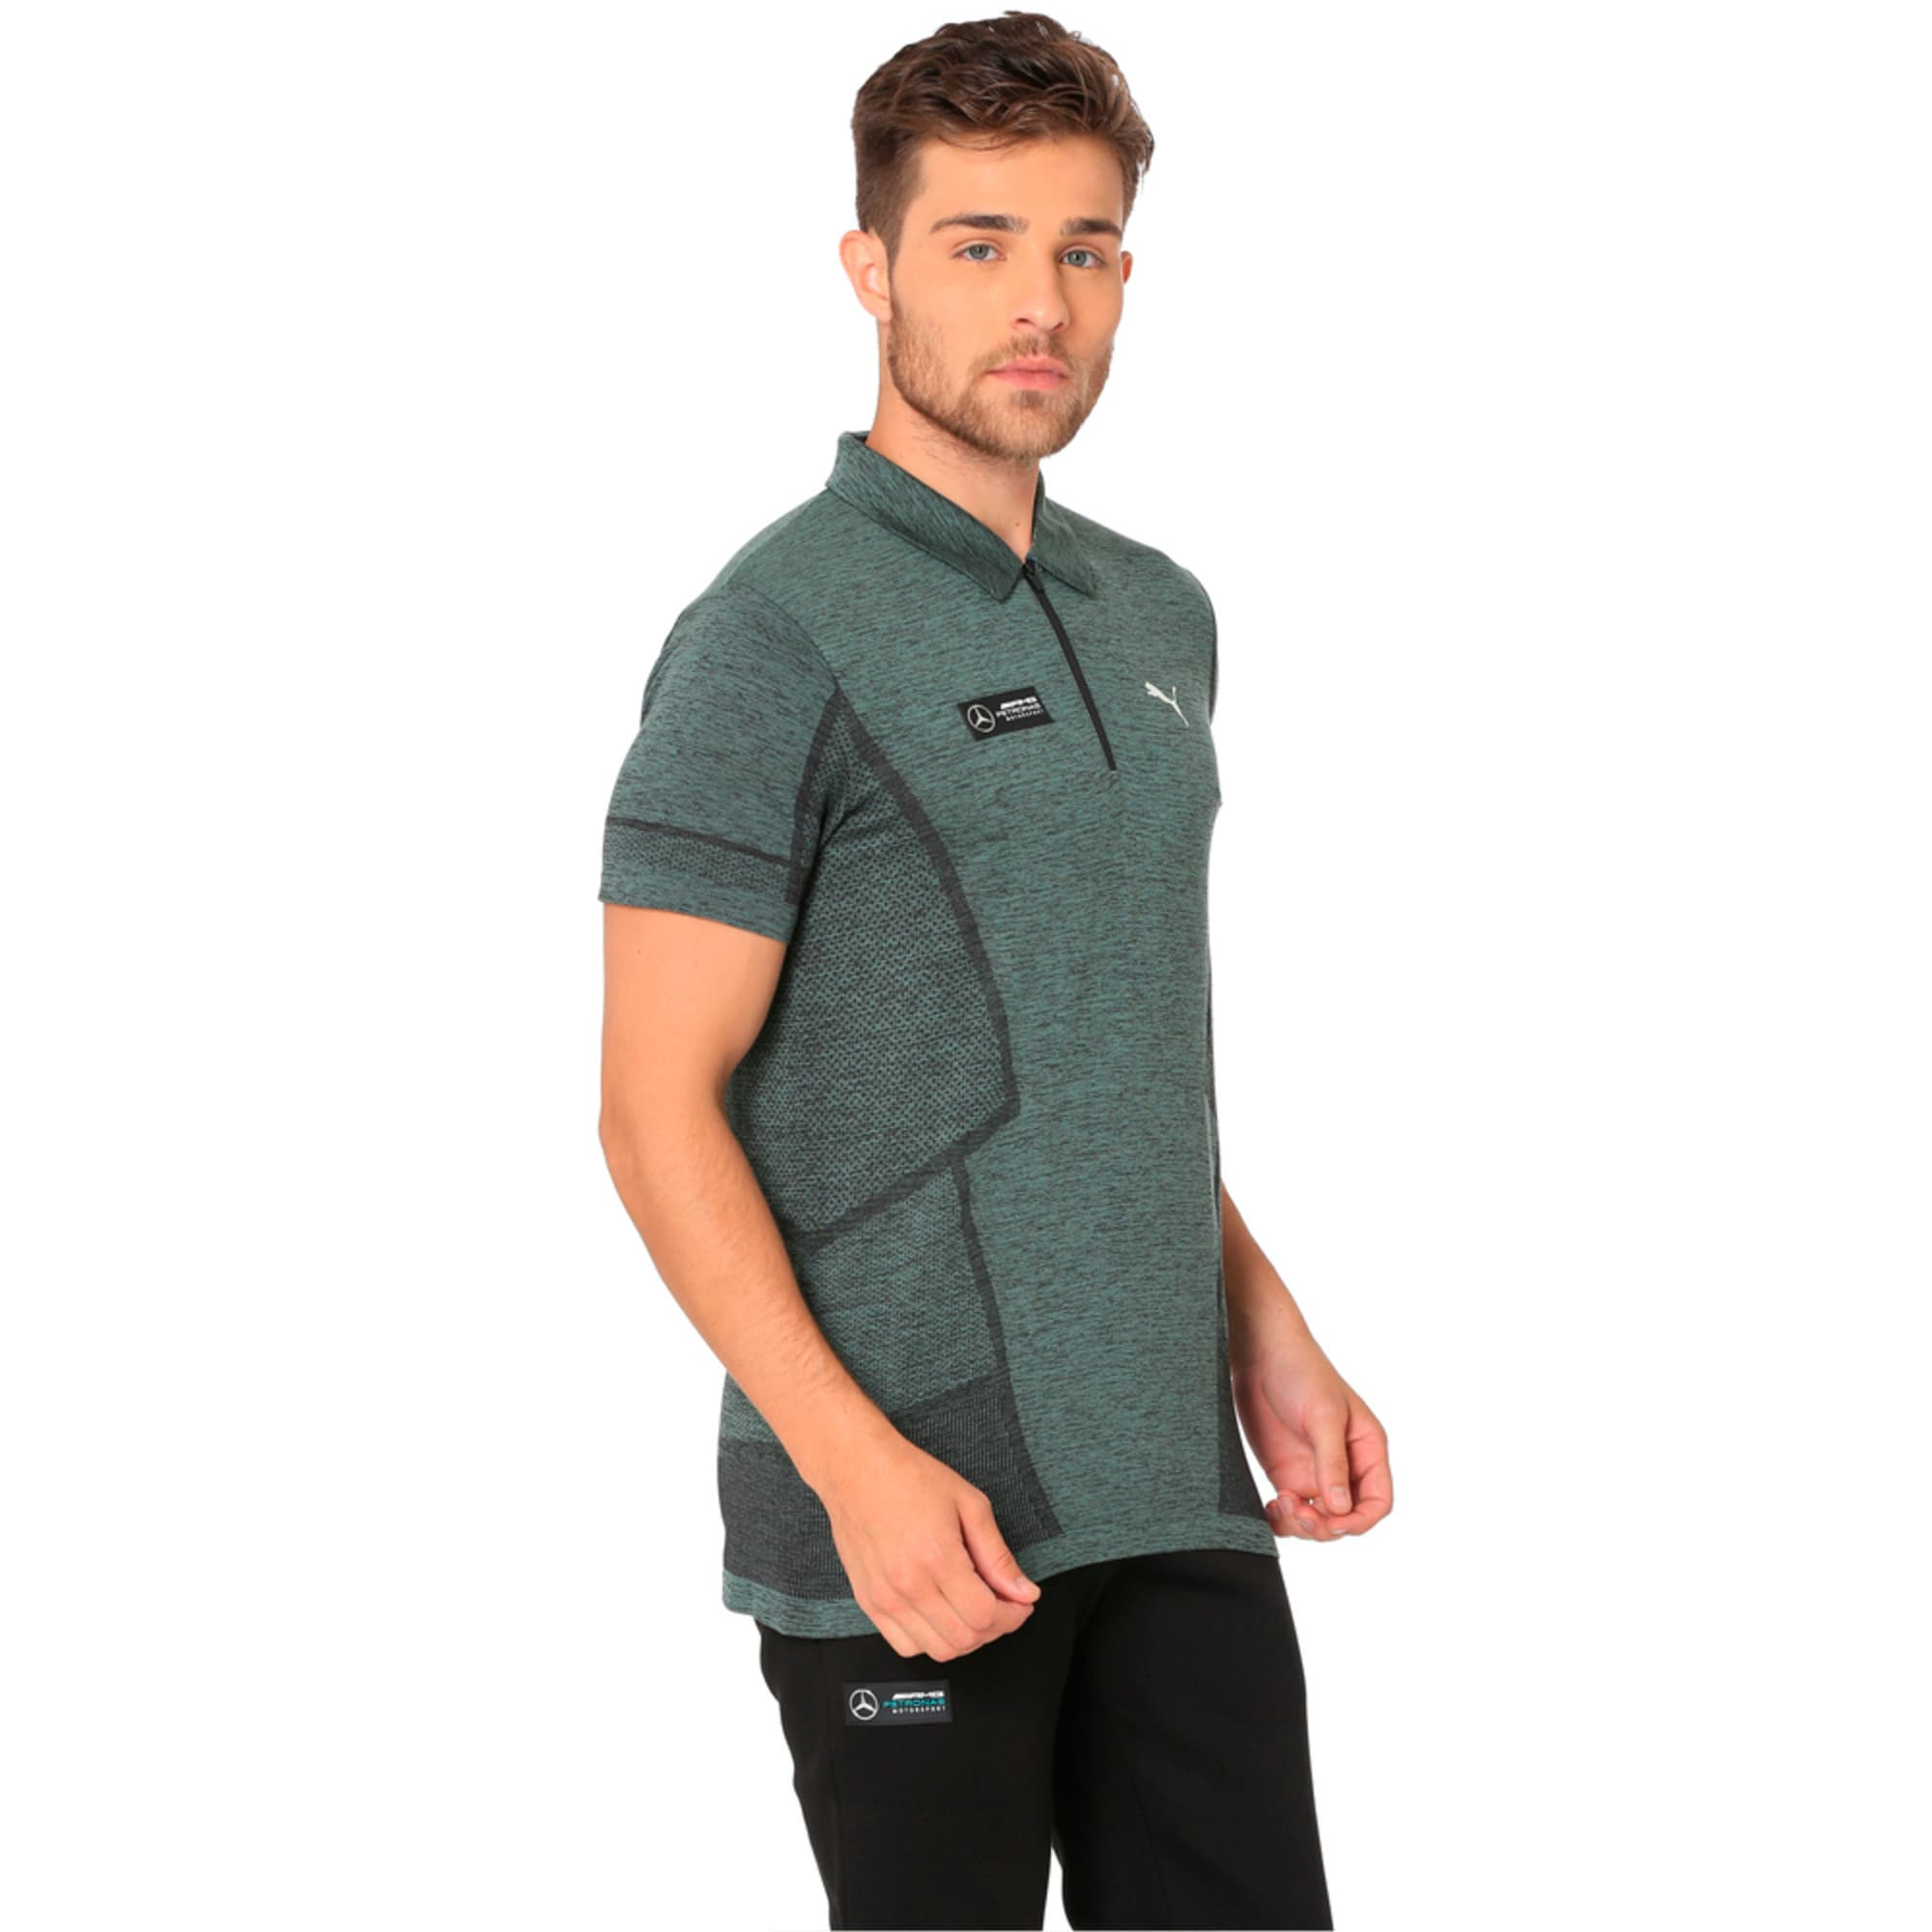 Thumbnail 3 of MERCEDES AMG PETRONAS Men's evoKNIT Polo, Laurel Wreath, medium-IND